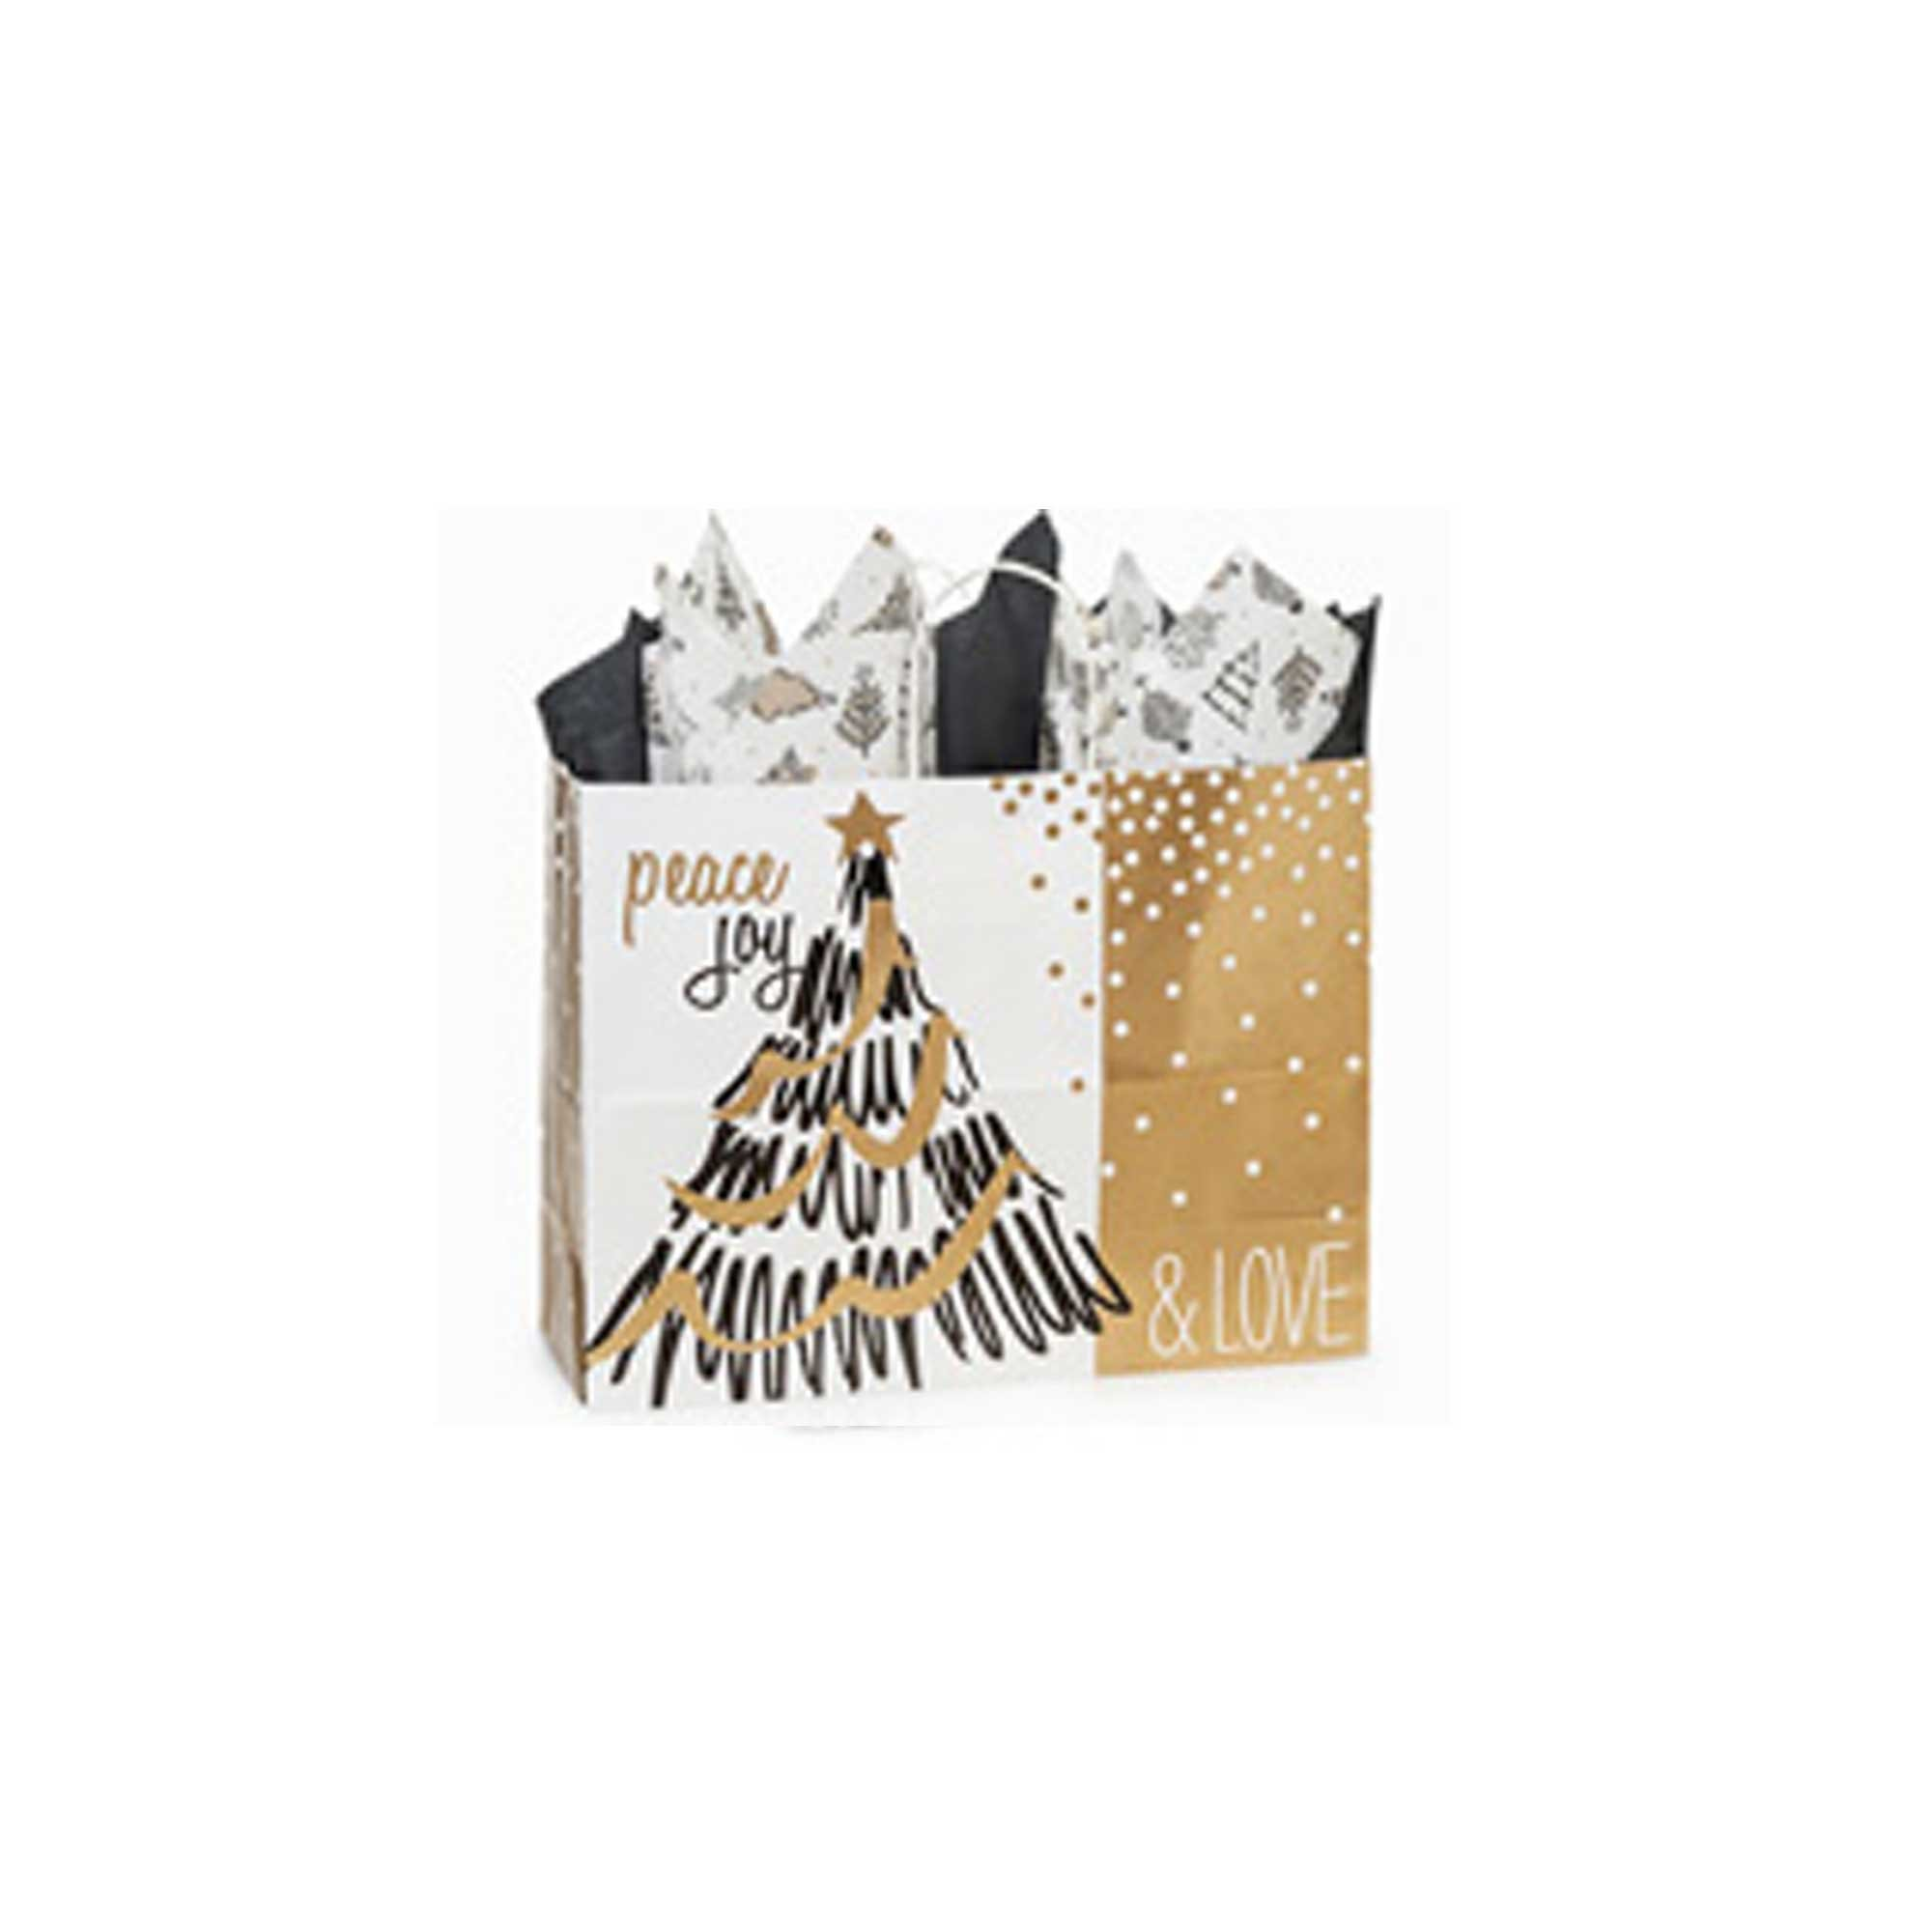 Creative Bag, Holiday Paper Shopping Bags, 16x6x12'', Golden Holiday Trees, 100ct, Merchandise, Retail, Party, Boutique, Gift, Bulk, Notion, Christmas, Holiday